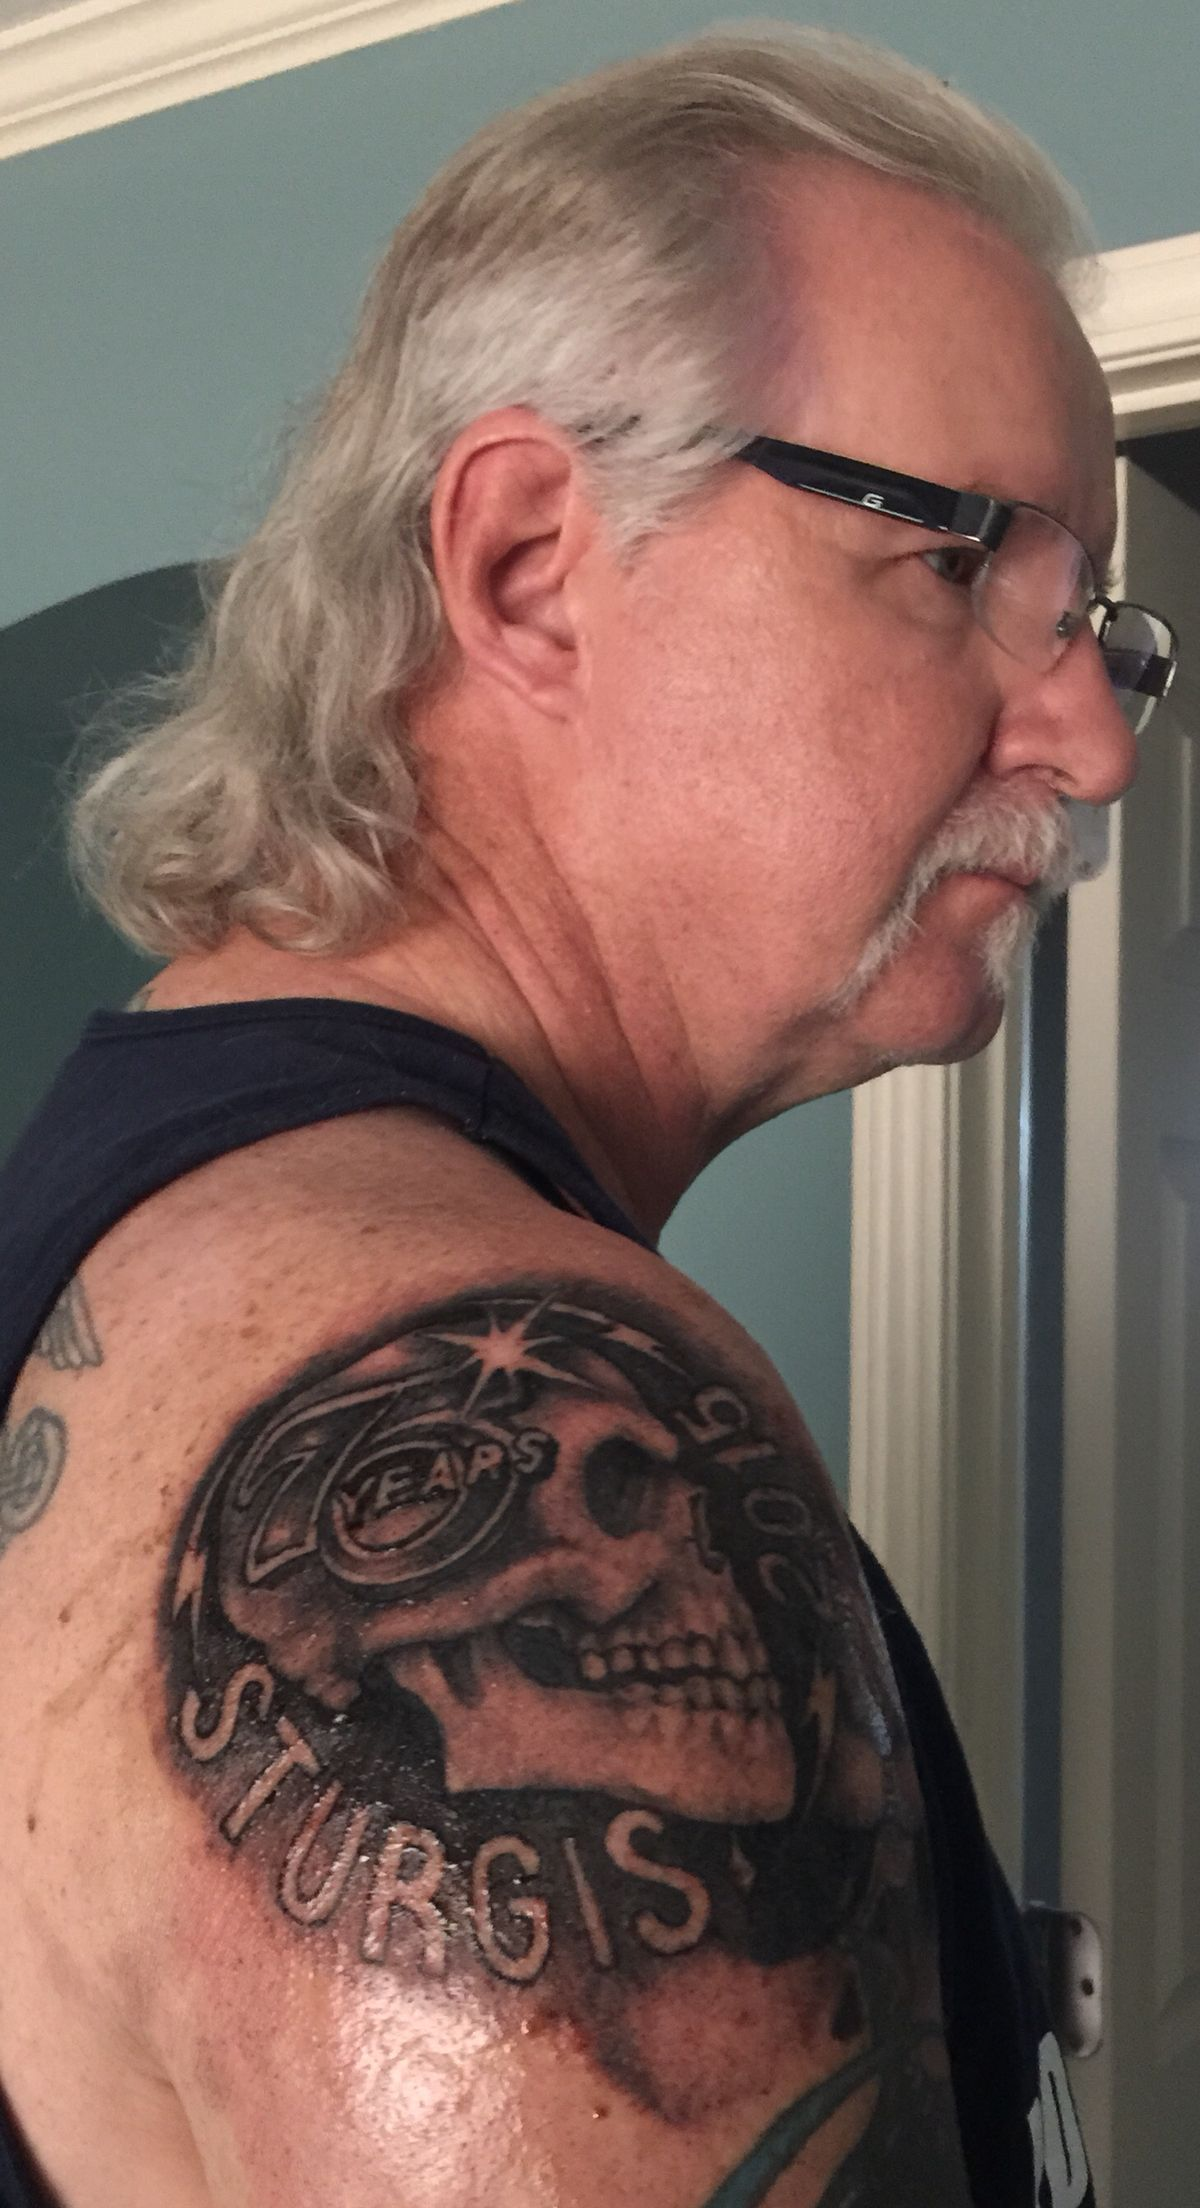 Nice Tattoo By Luis R Out Standing Work From Purgatory Tattoos Of Independence Missouri Cool Tattoos Tattoos Independence Missouri